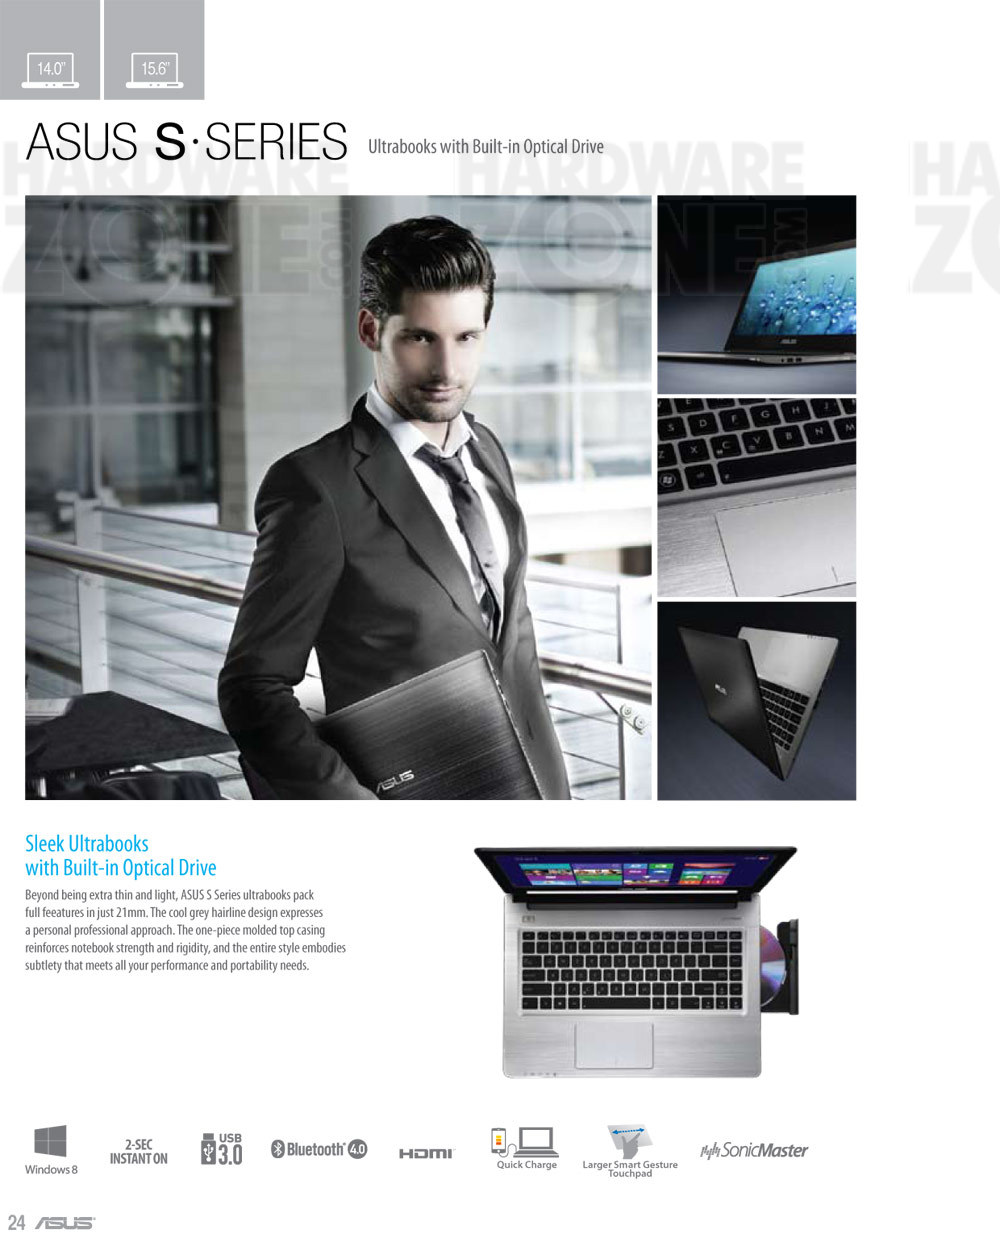 ASUS S-series notebook - page 1